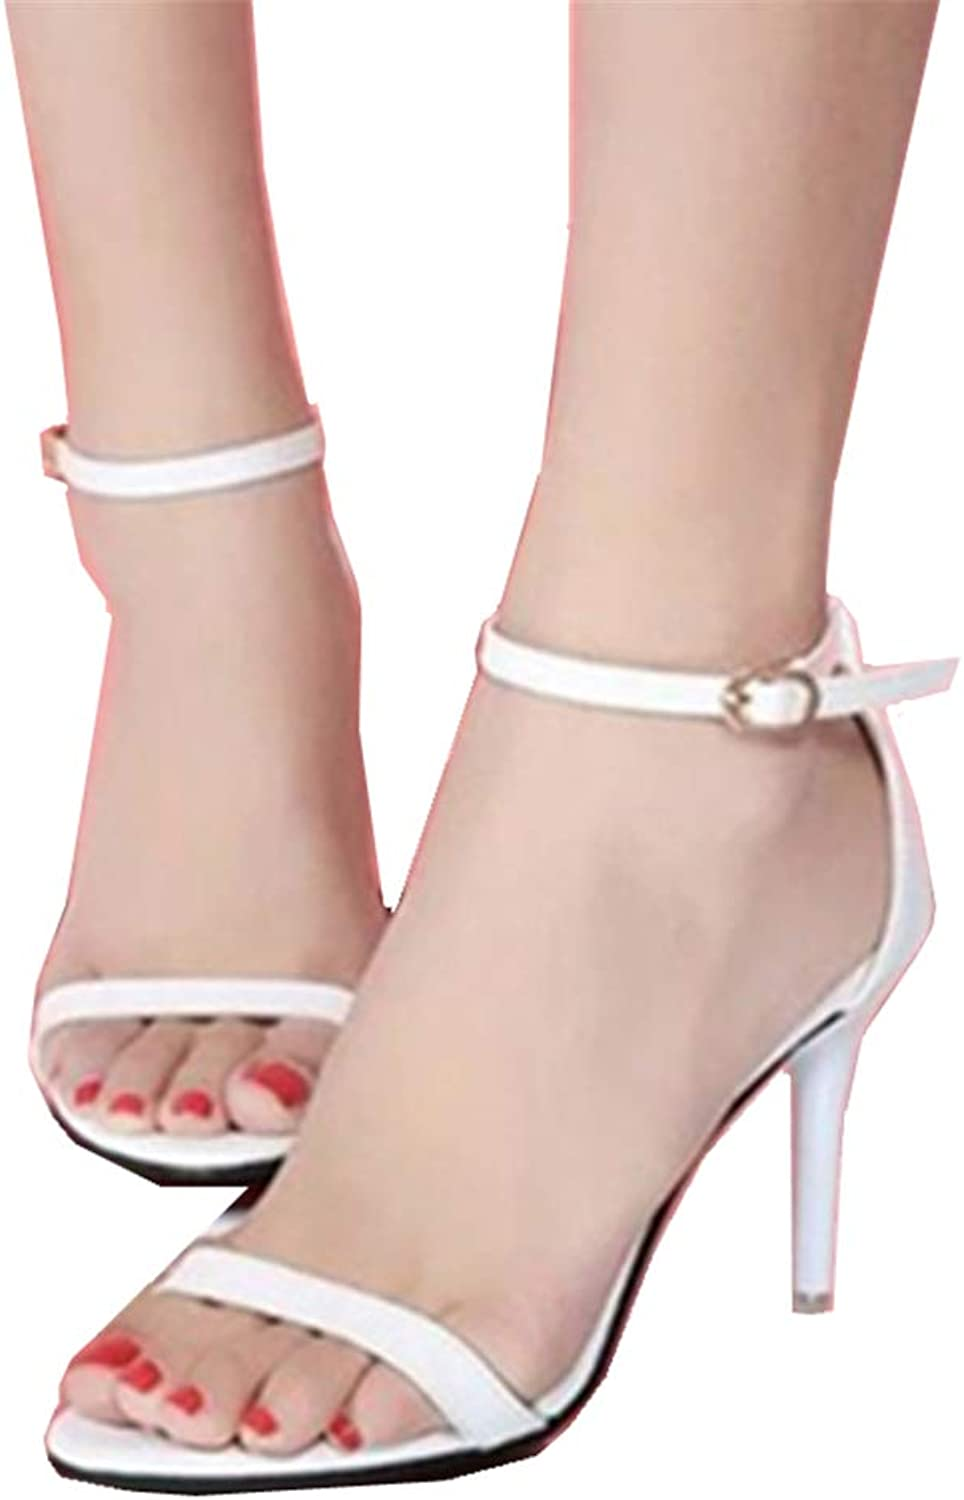 CHENGLing Women's Open Toe Stiletto High Heel Ankle Strap Sandals for Dress Wedding Party